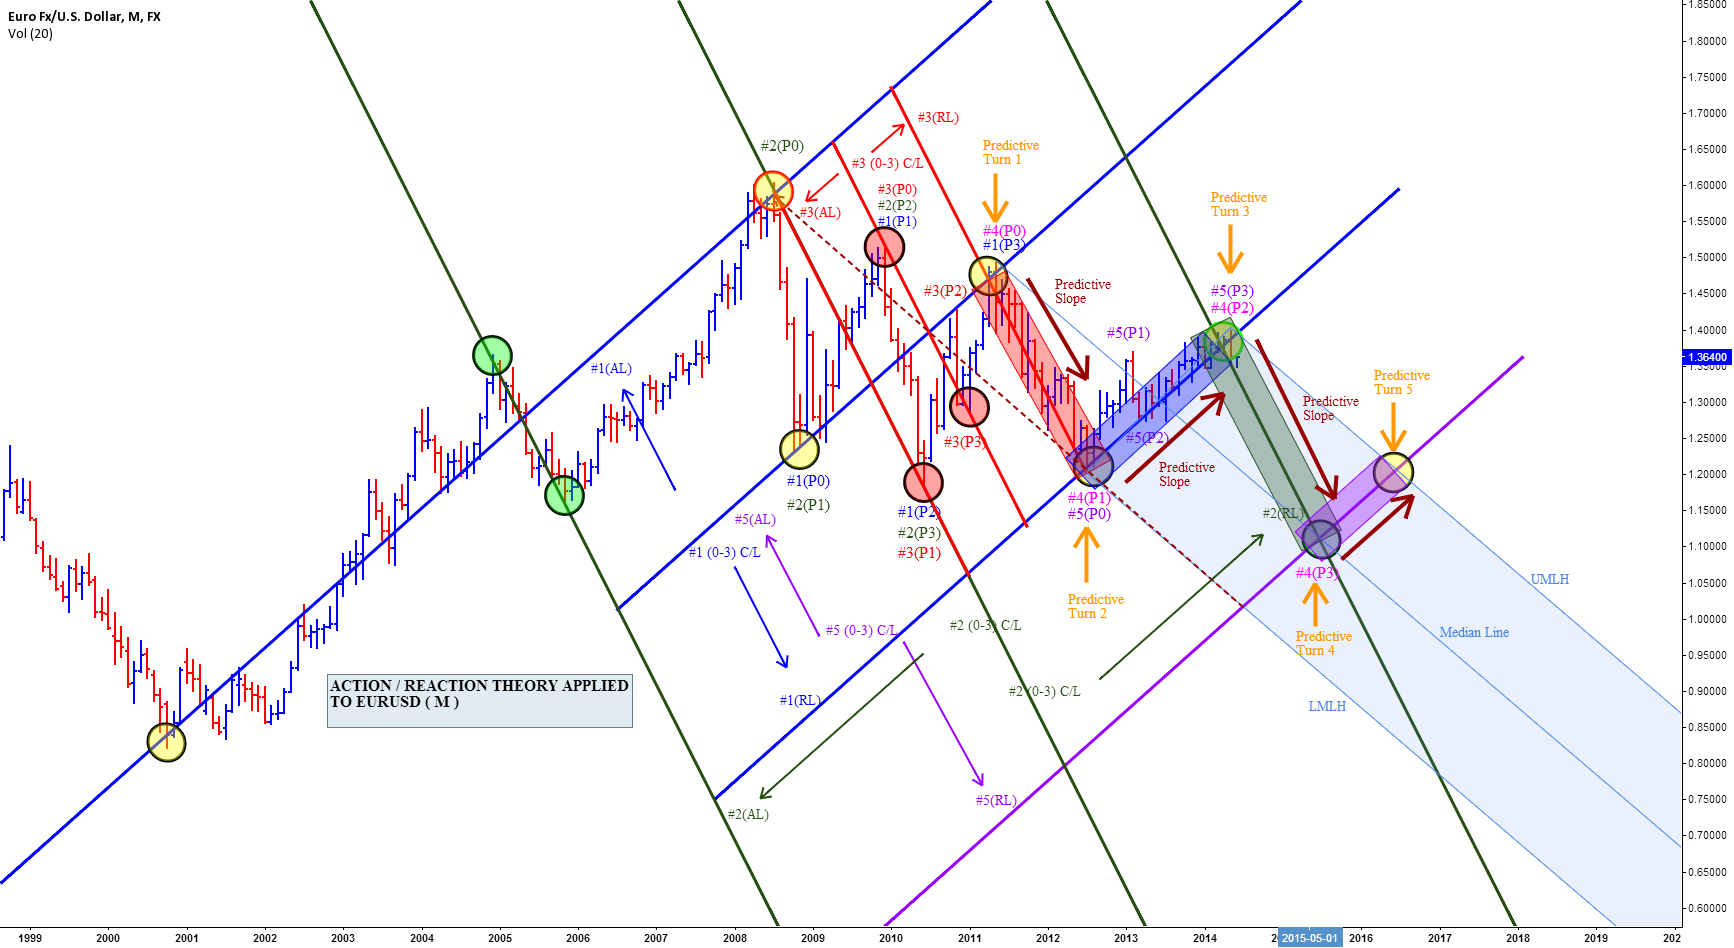 ACTION / REACTION THEORY APPLIED TO EURUSD ( M )